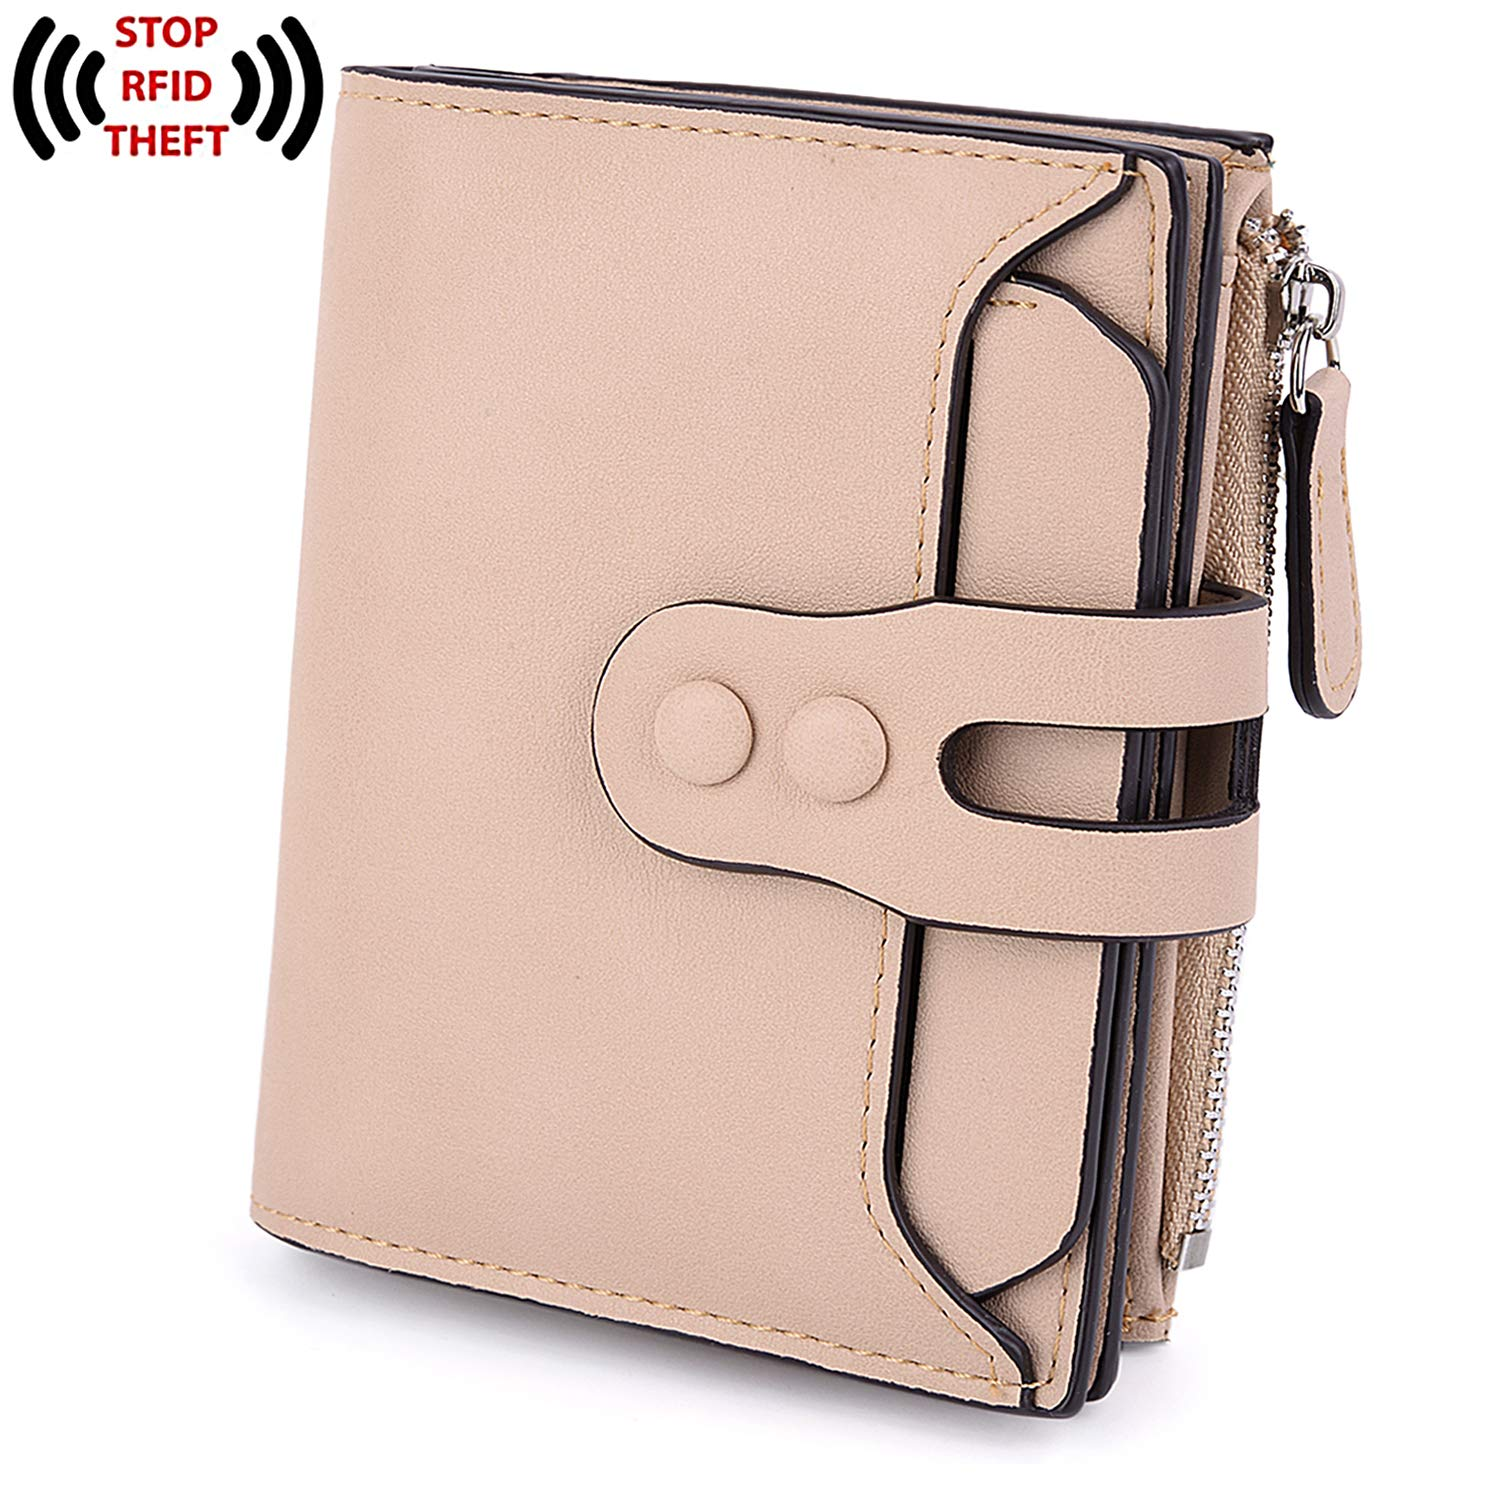 UTO RFID Wallet for Women PU Matte Leather Blocking Tech Wallet Card Holder Organizer Girls Coin Purse with Snap Closure E Pink